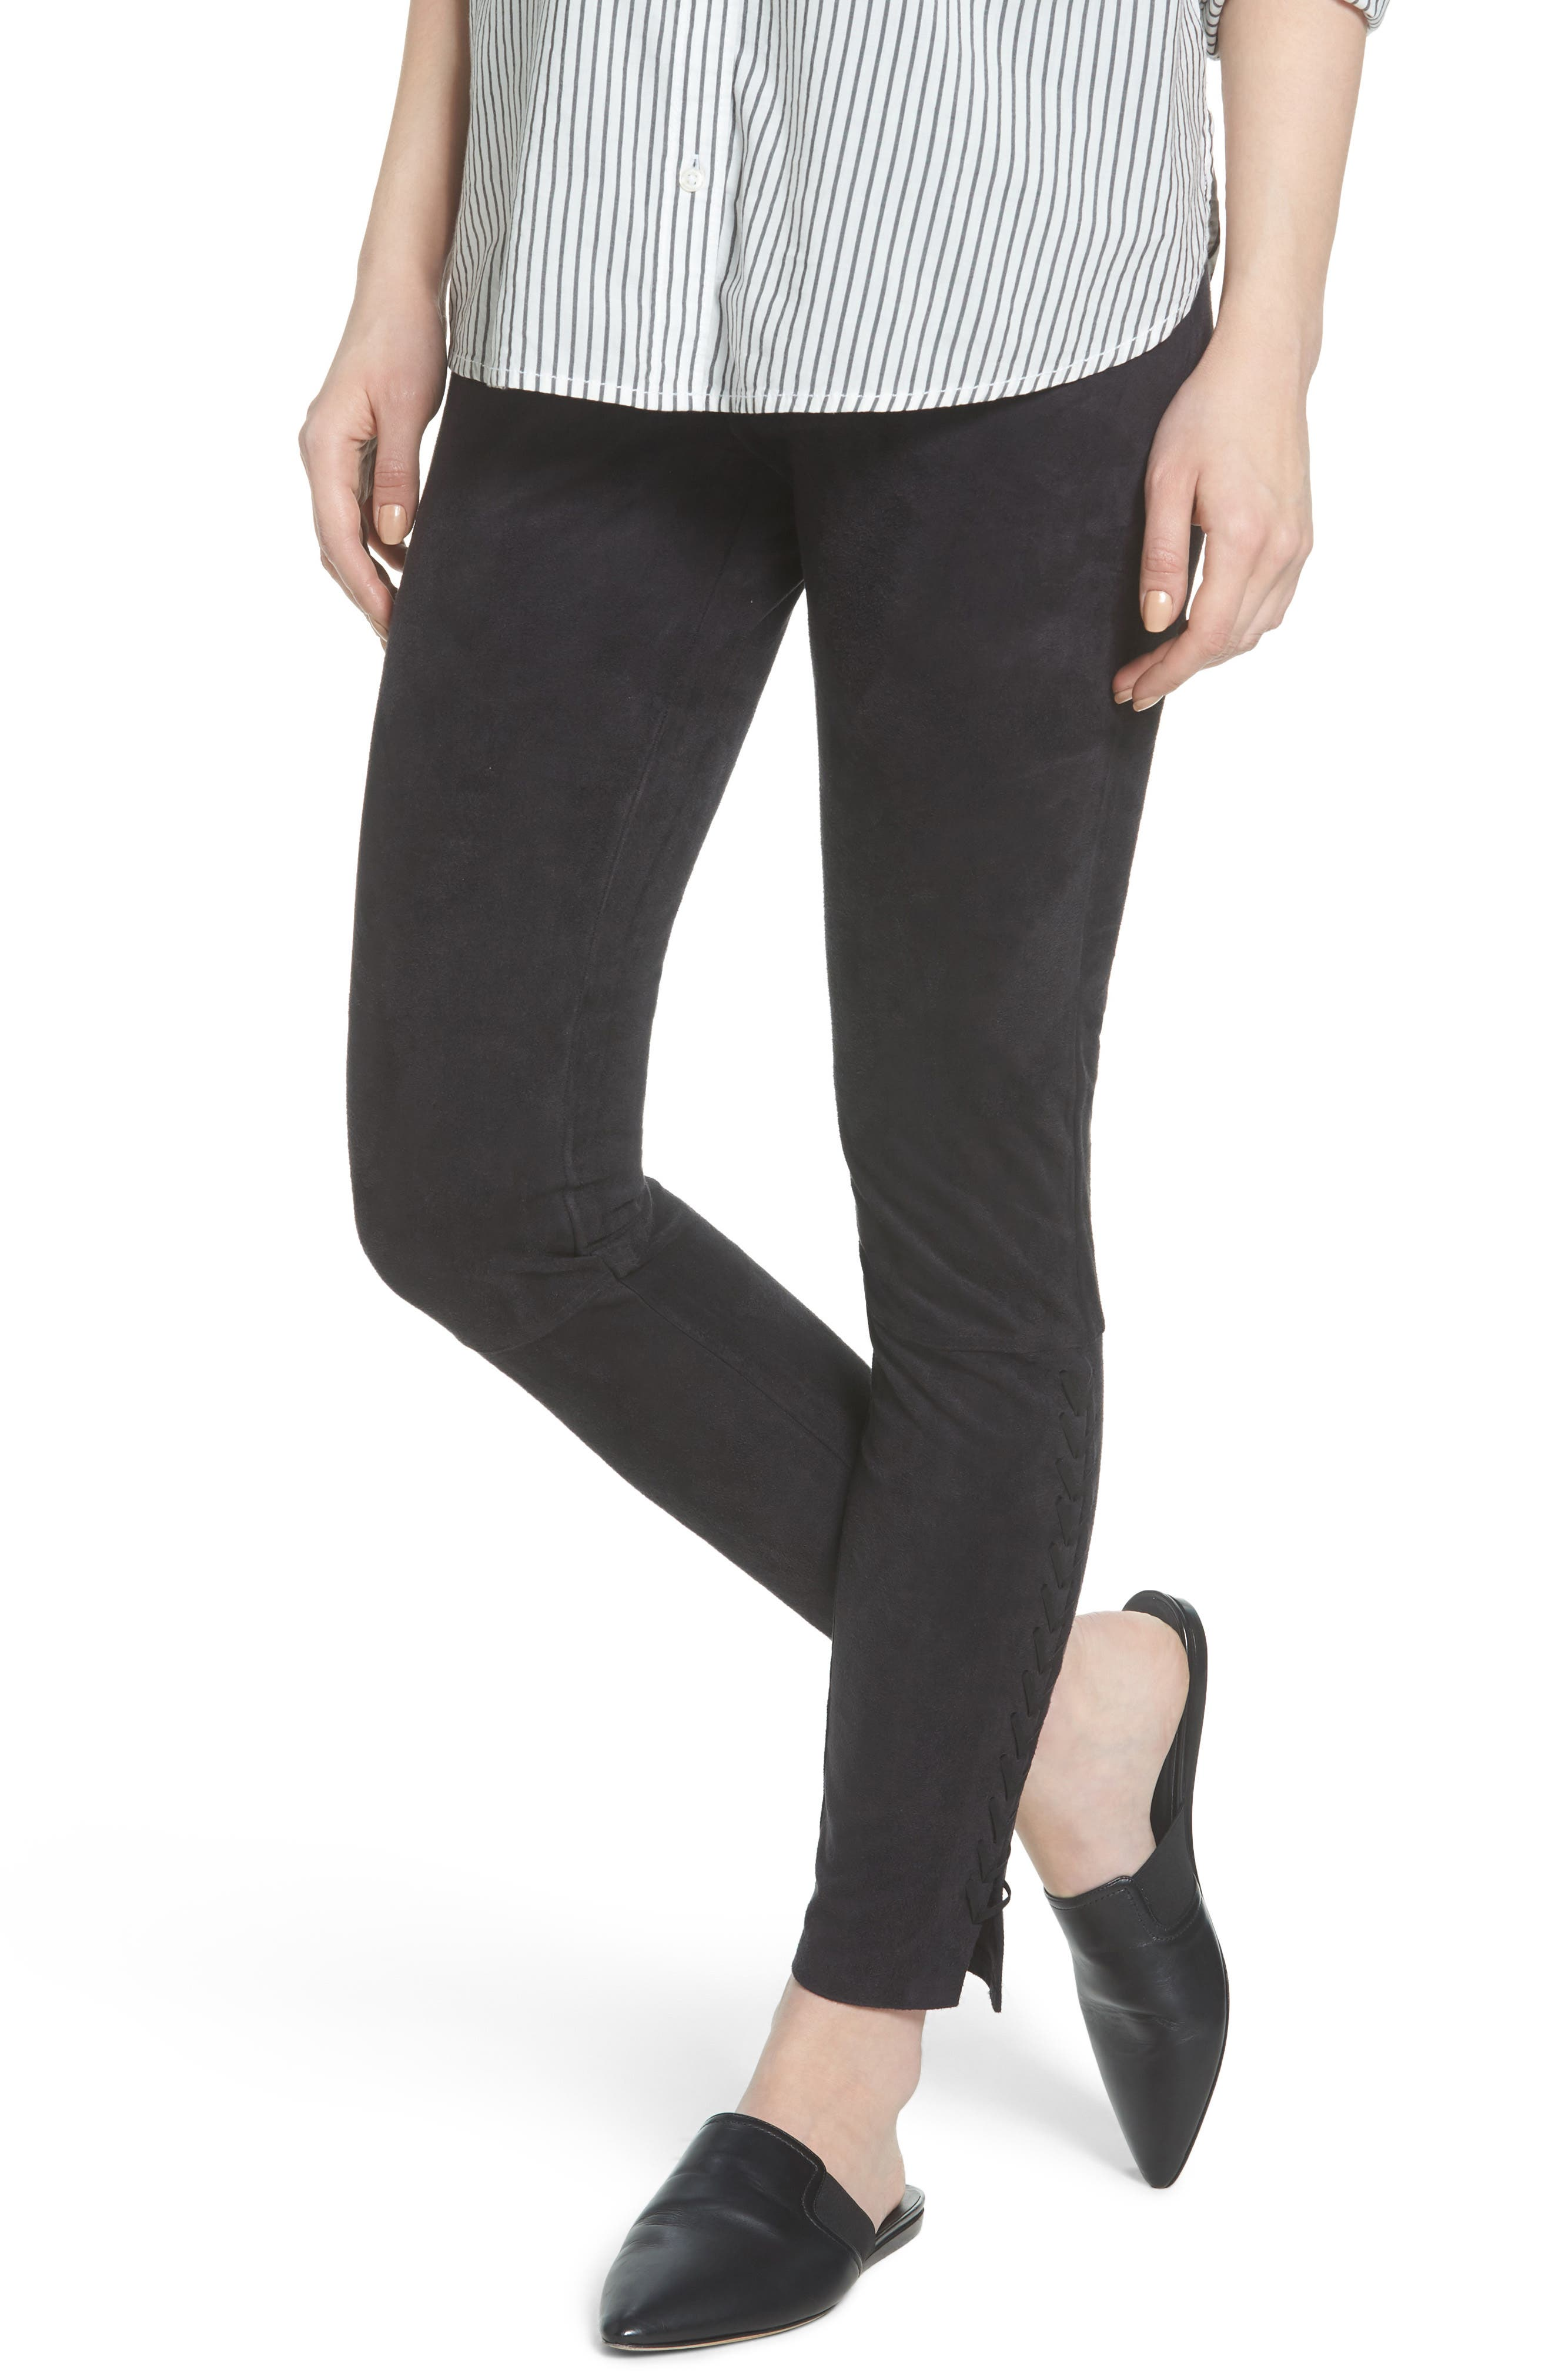 Mission Leggings,                         Main,                         color, 001